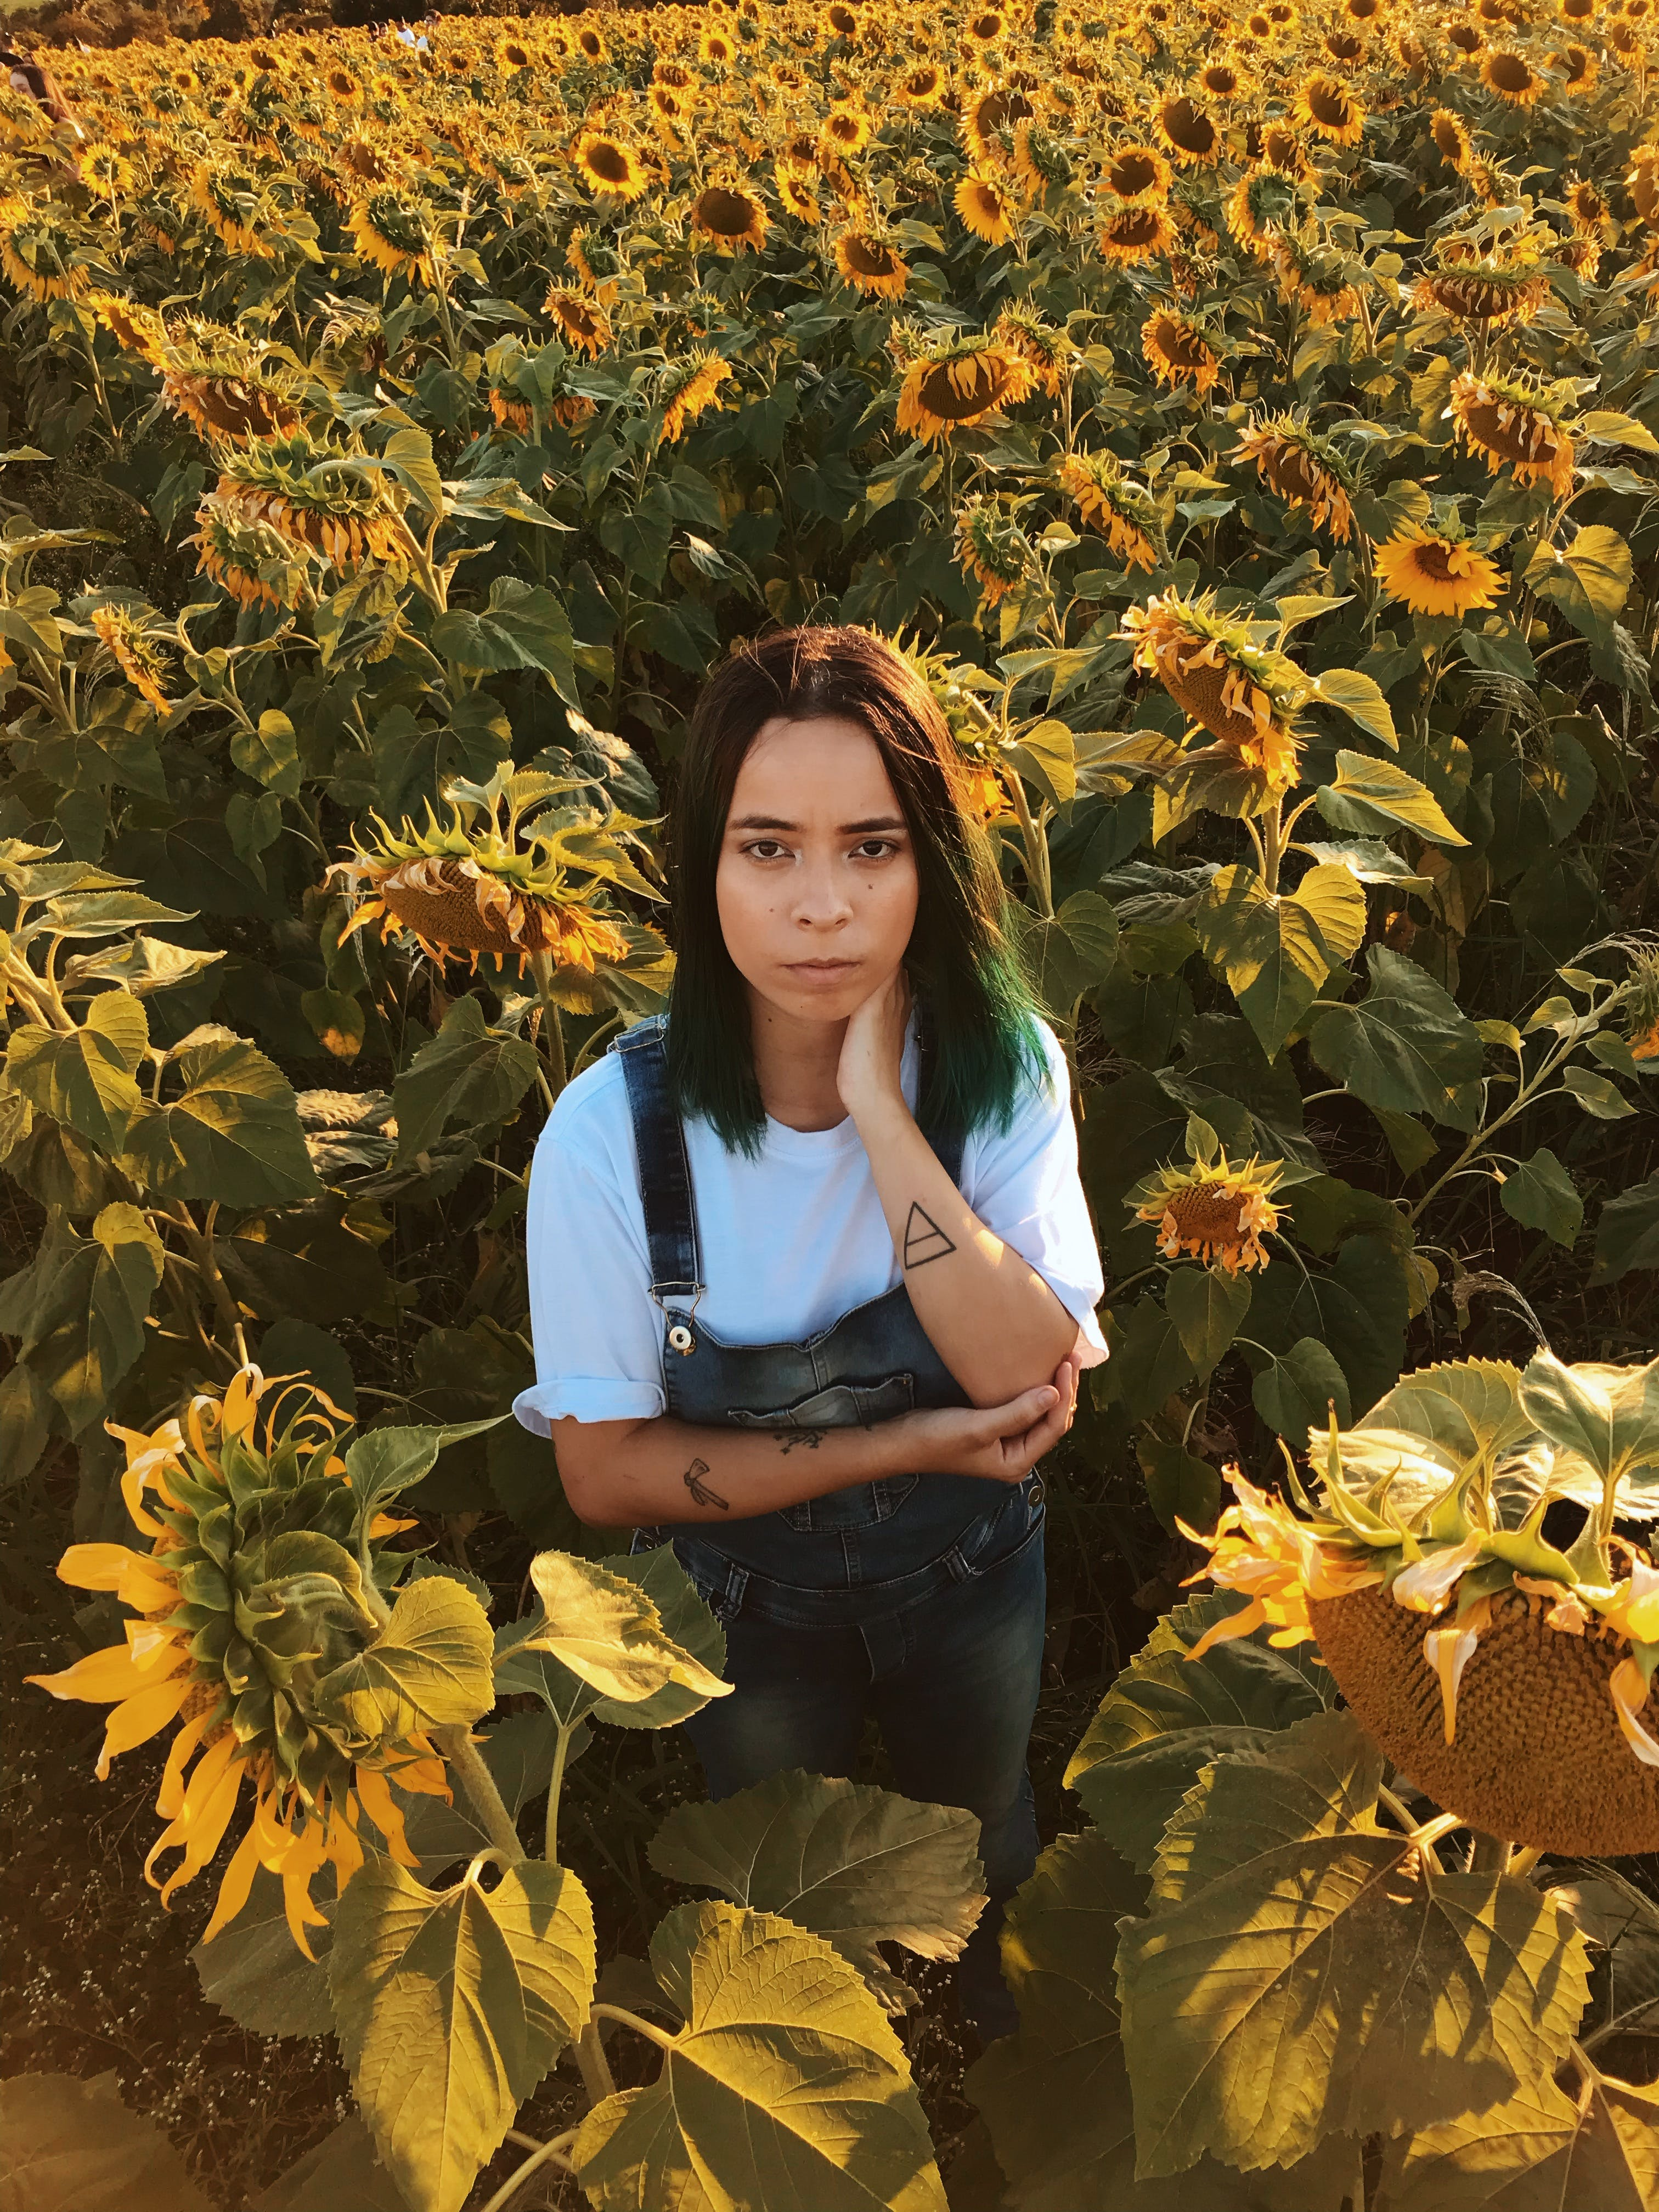 Woman Standing In The Middle Of The Sunflower Field